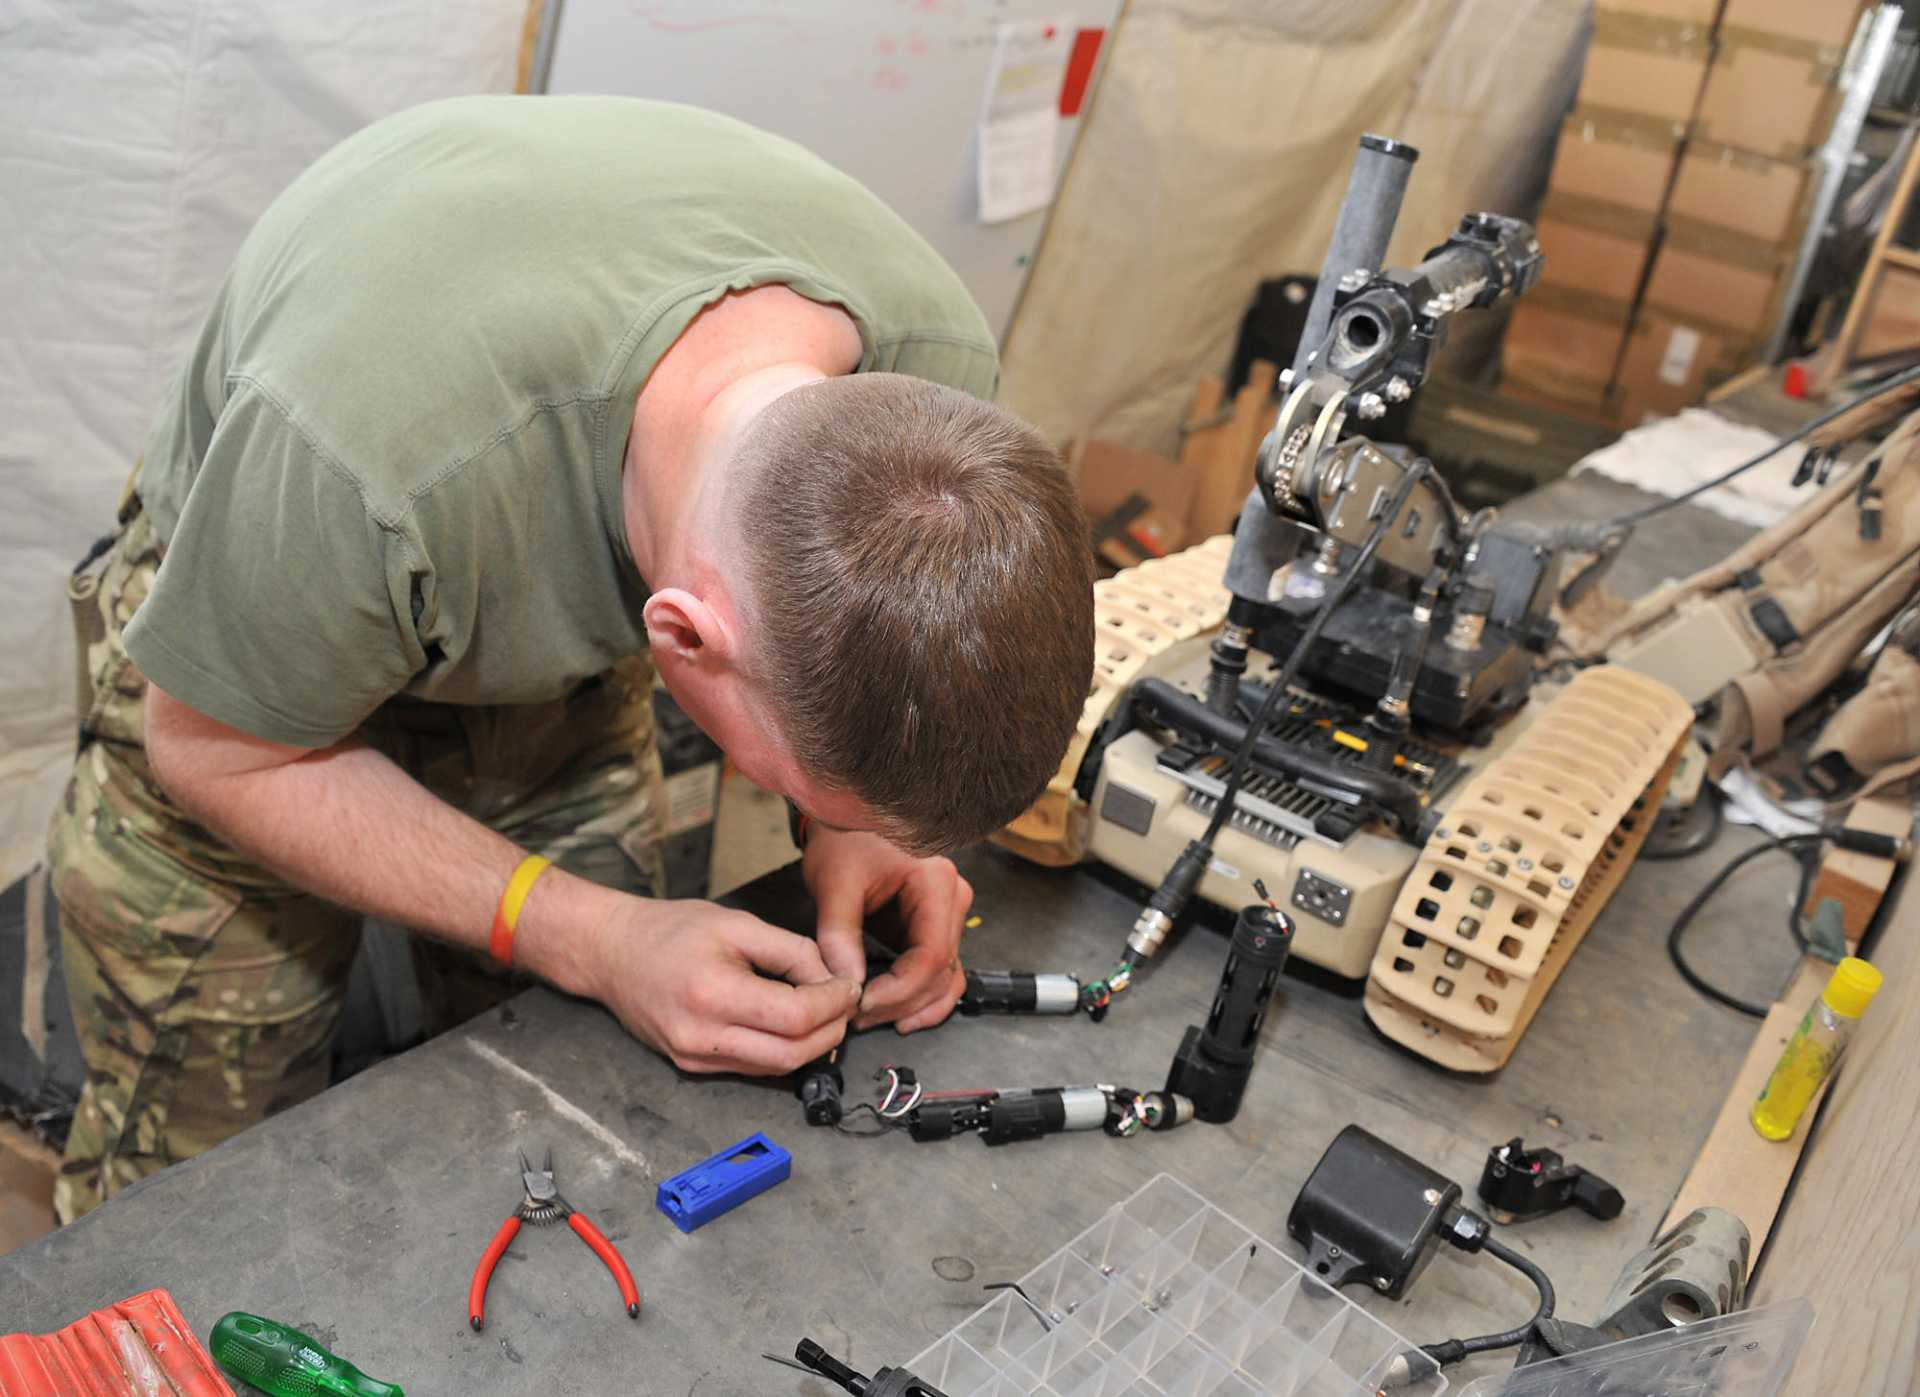 Manufacturers who can look beyond military-specific experience and appreciate the technical expertise of ex-Forces personnel can benefit greatly from the huge training budget invested in the military.